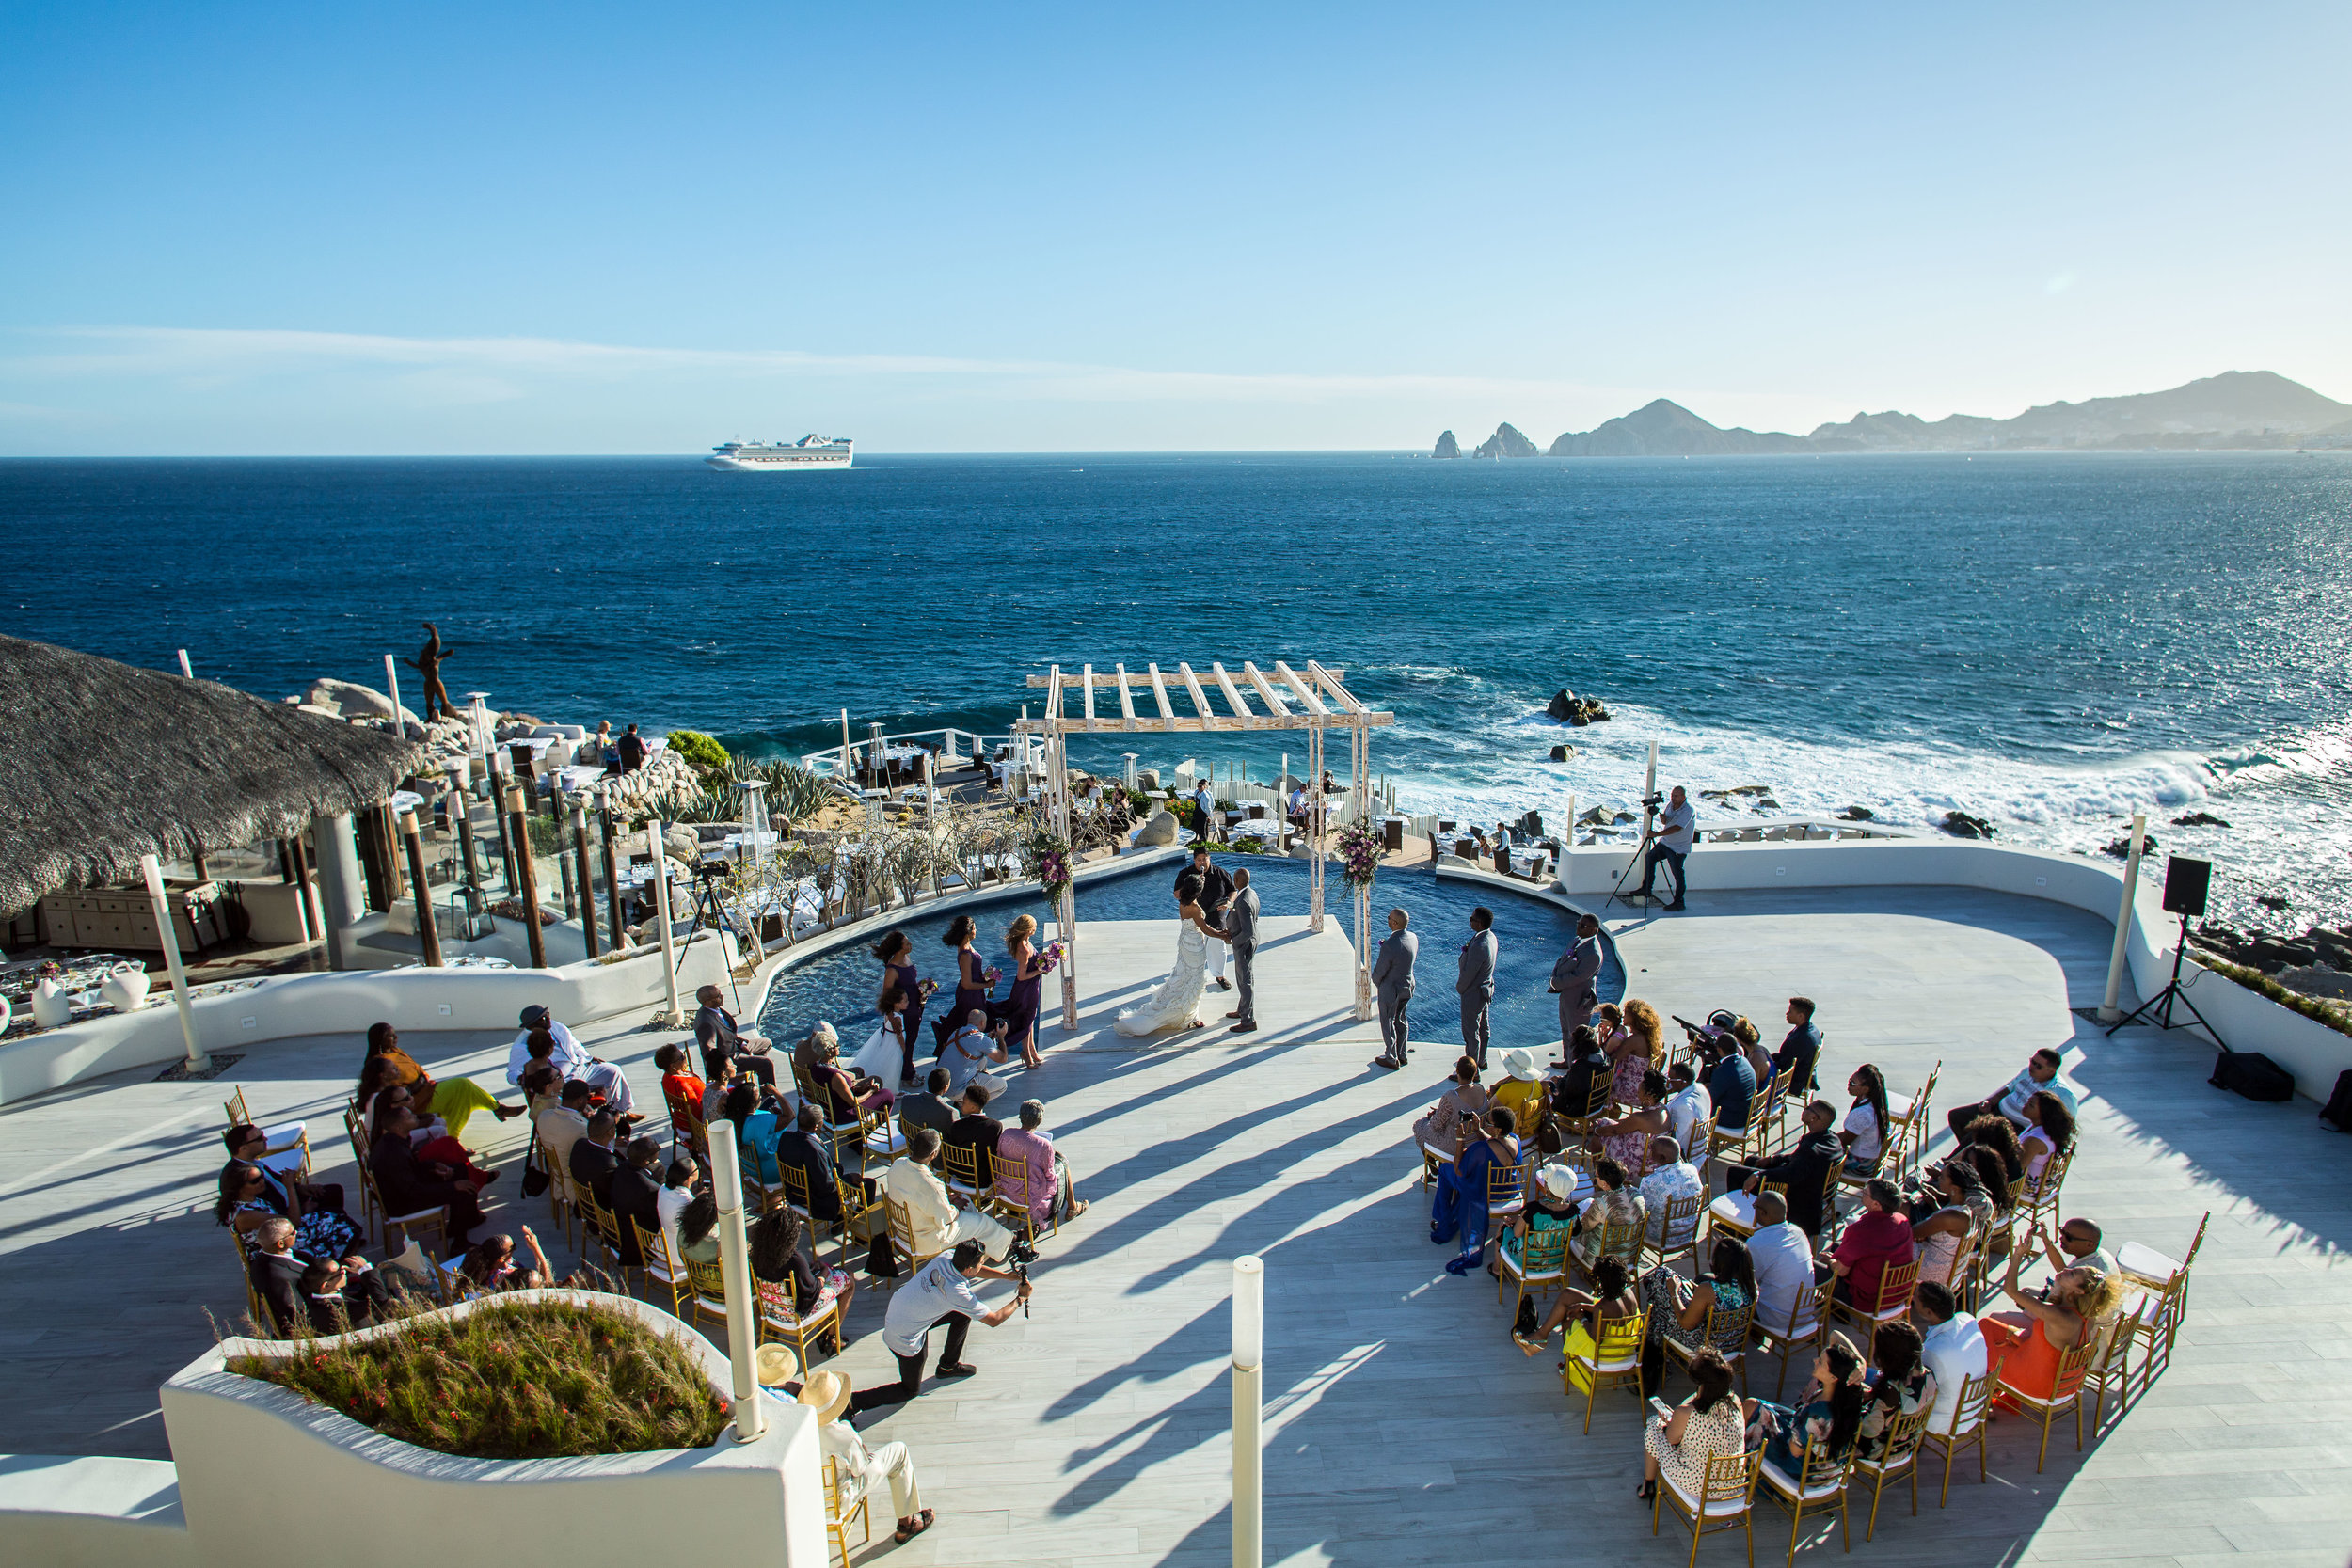 Sunset Monalisa wedding venue. Beutiful ceremony with all the gests and the ocean behind